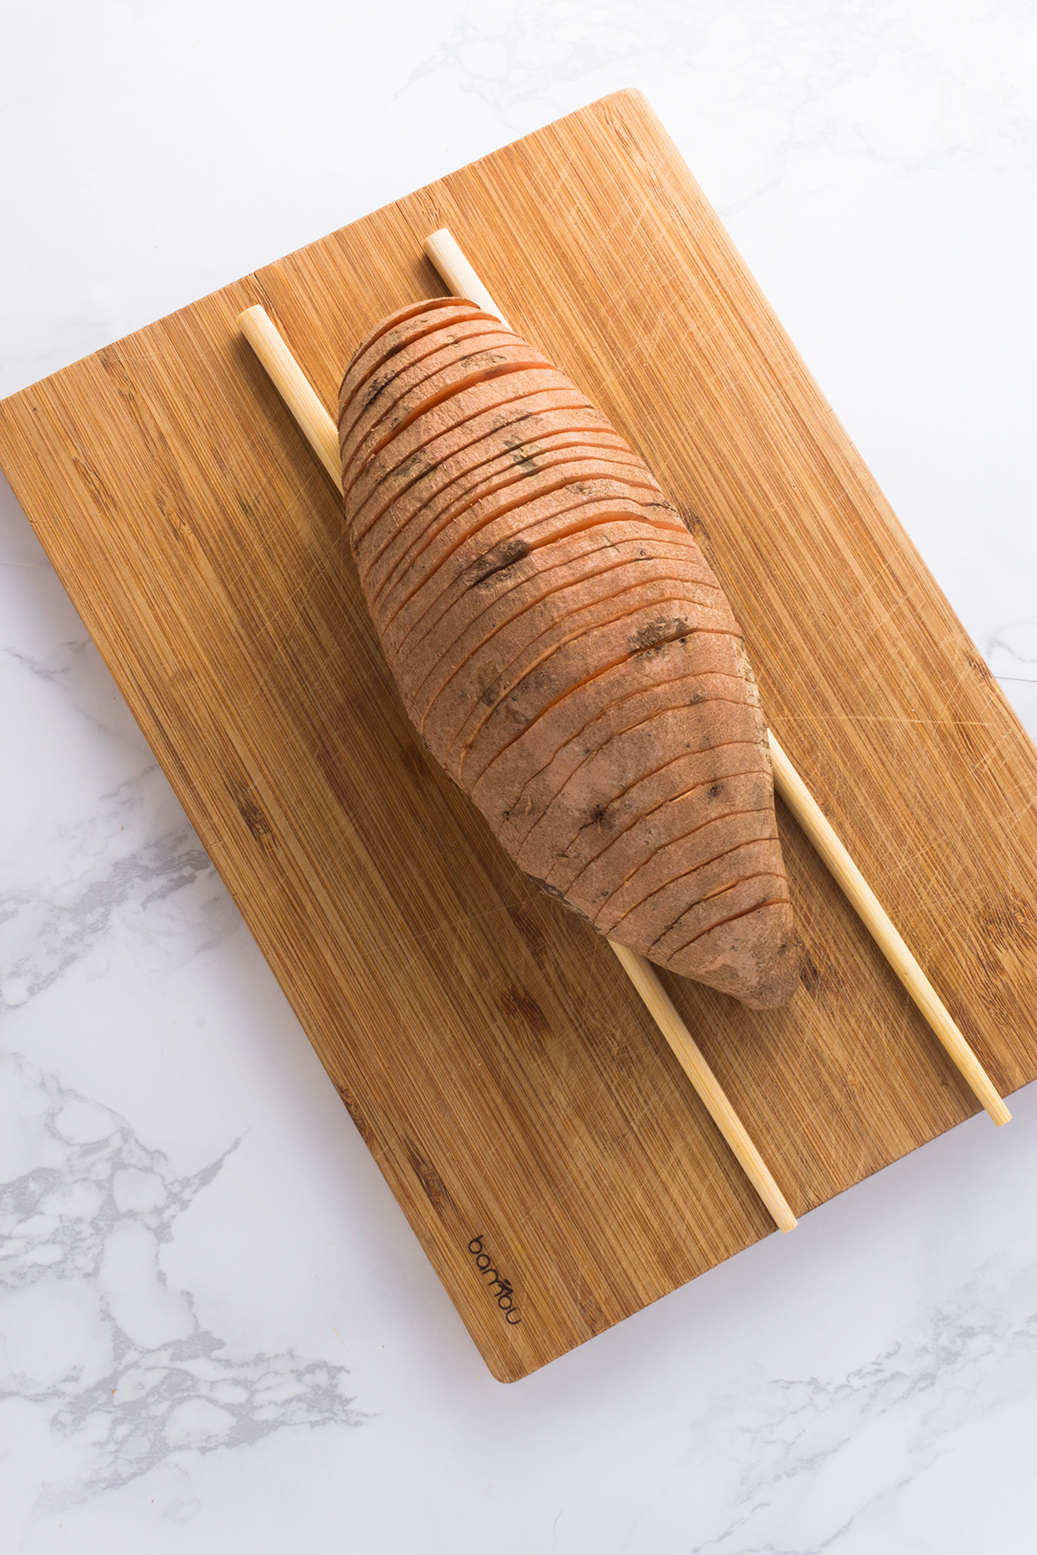 Using chopsticks on either side of the spud prevents you from cutting all of the way through.